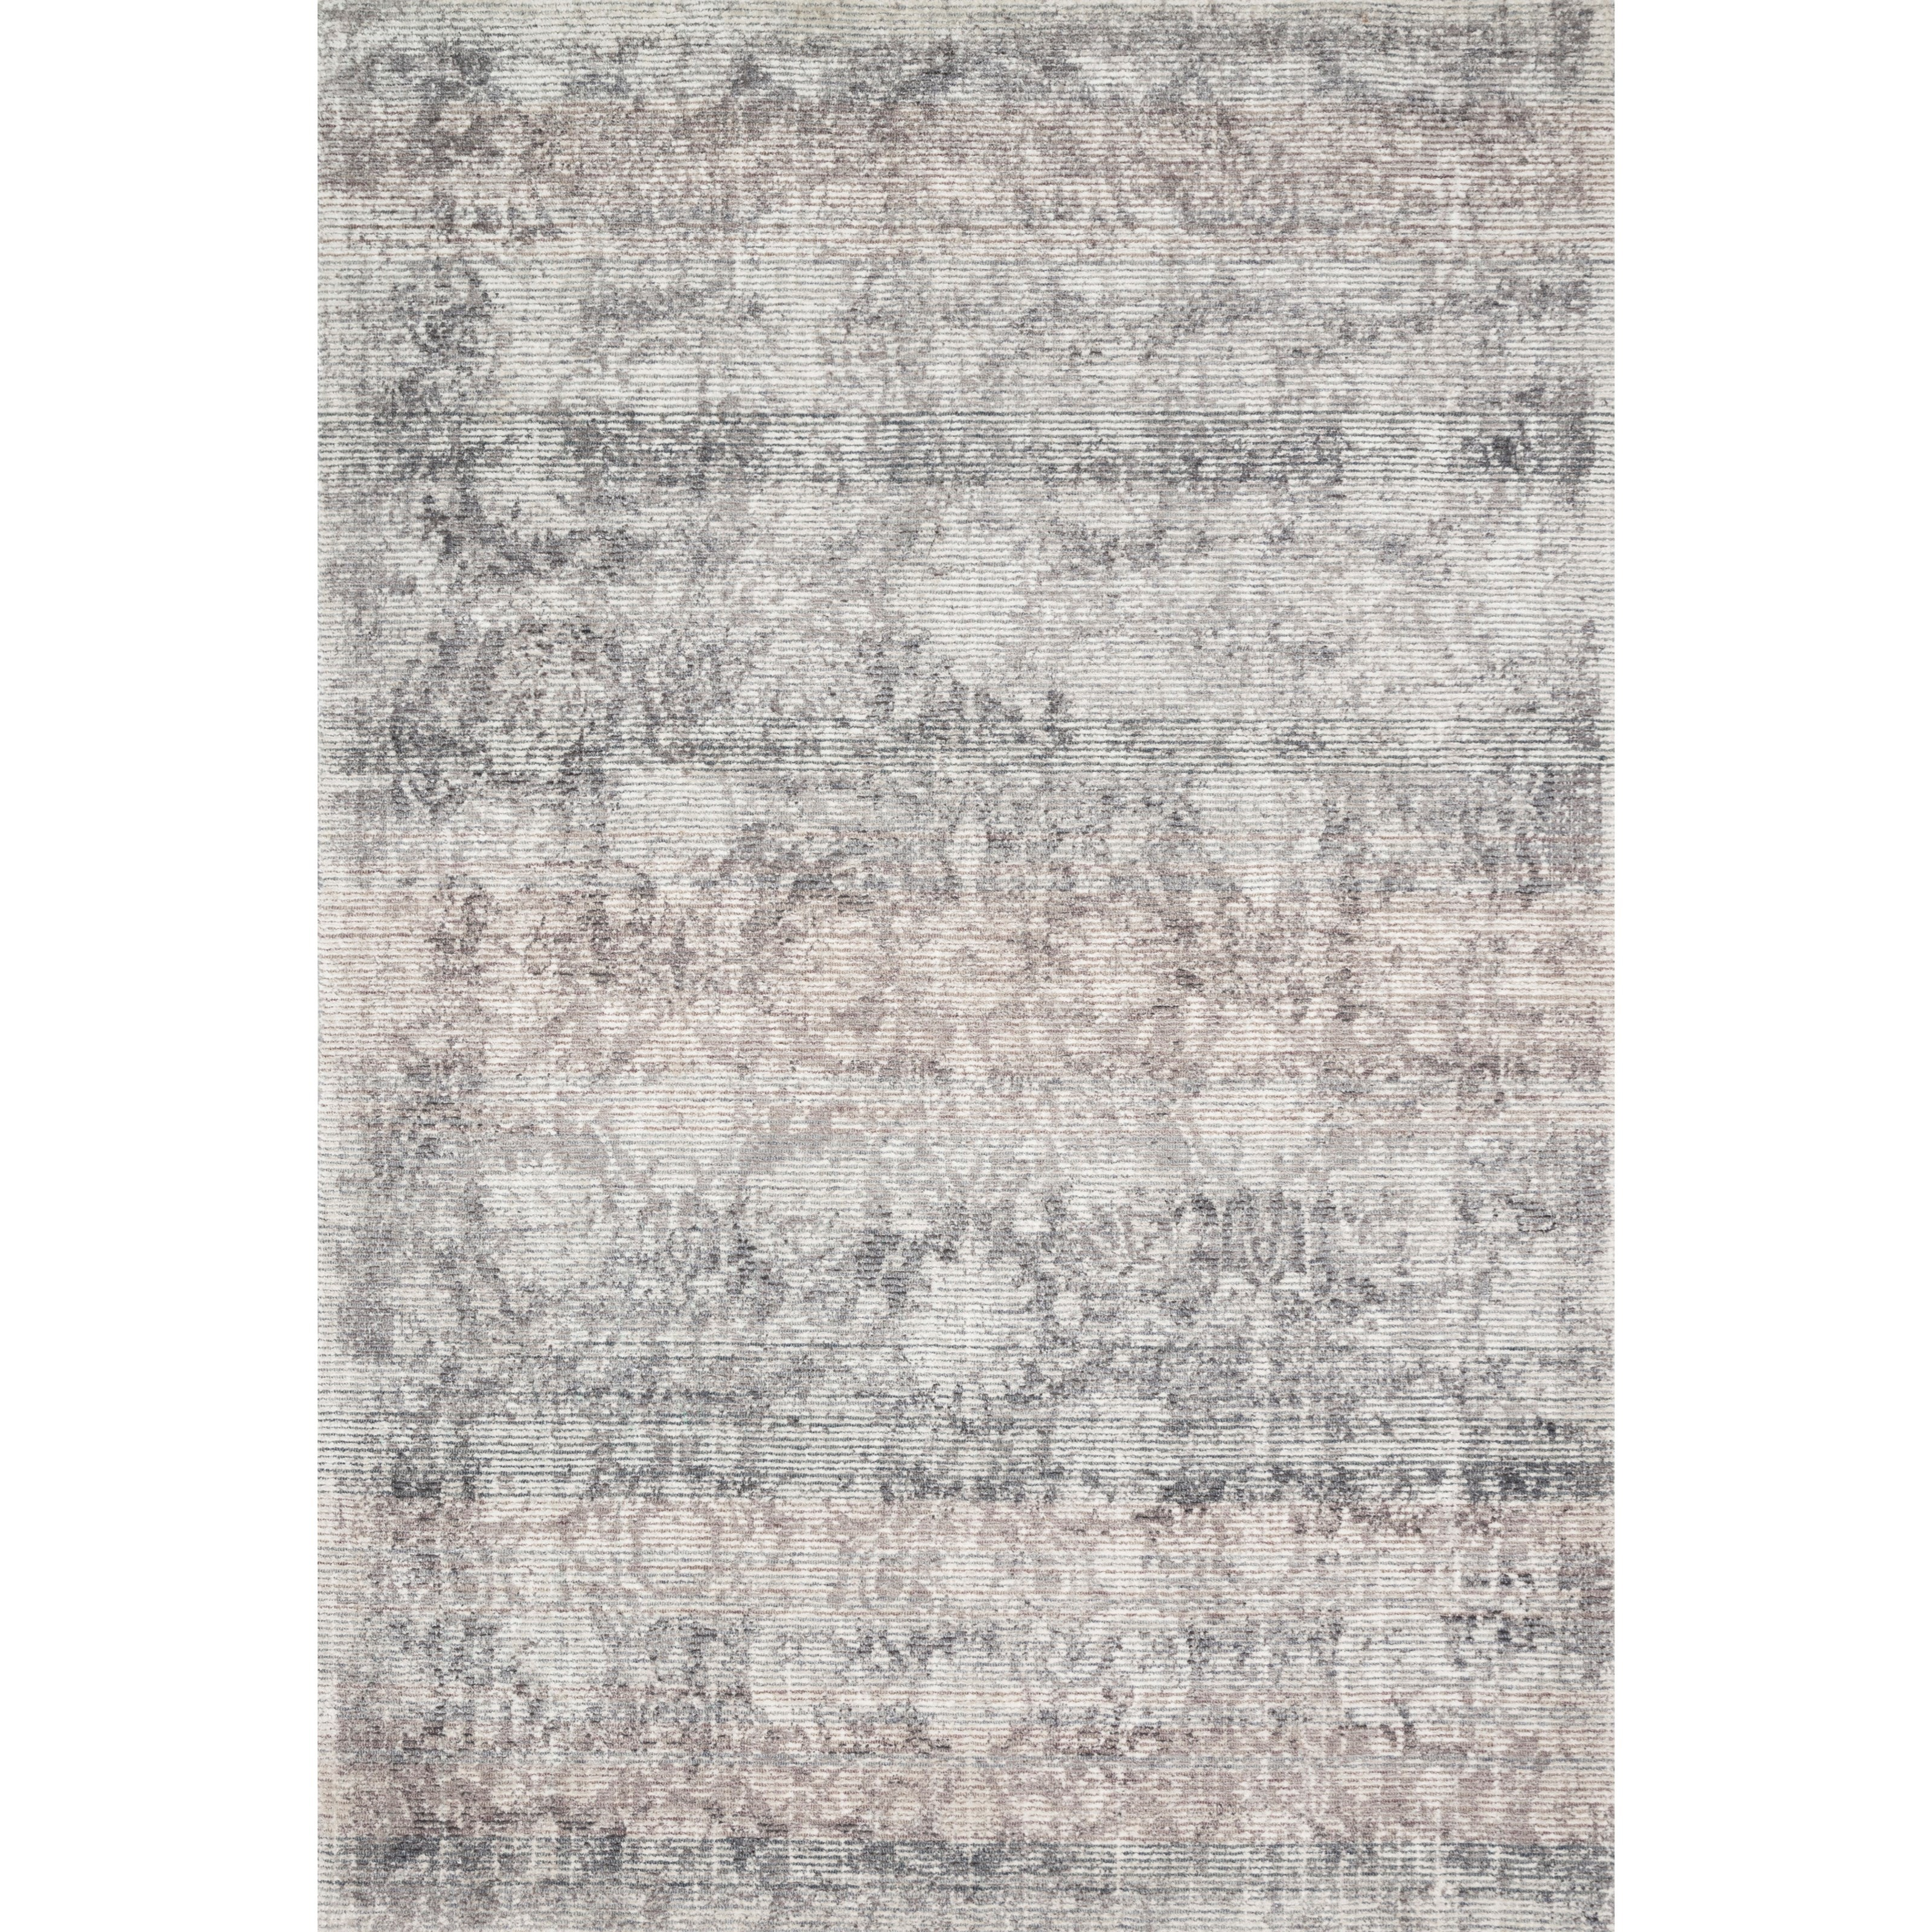 """Rumi 5'0"""" x 7'6"""" Pewter Rug by Loloi Rugs at Virginia Furniture Market"""